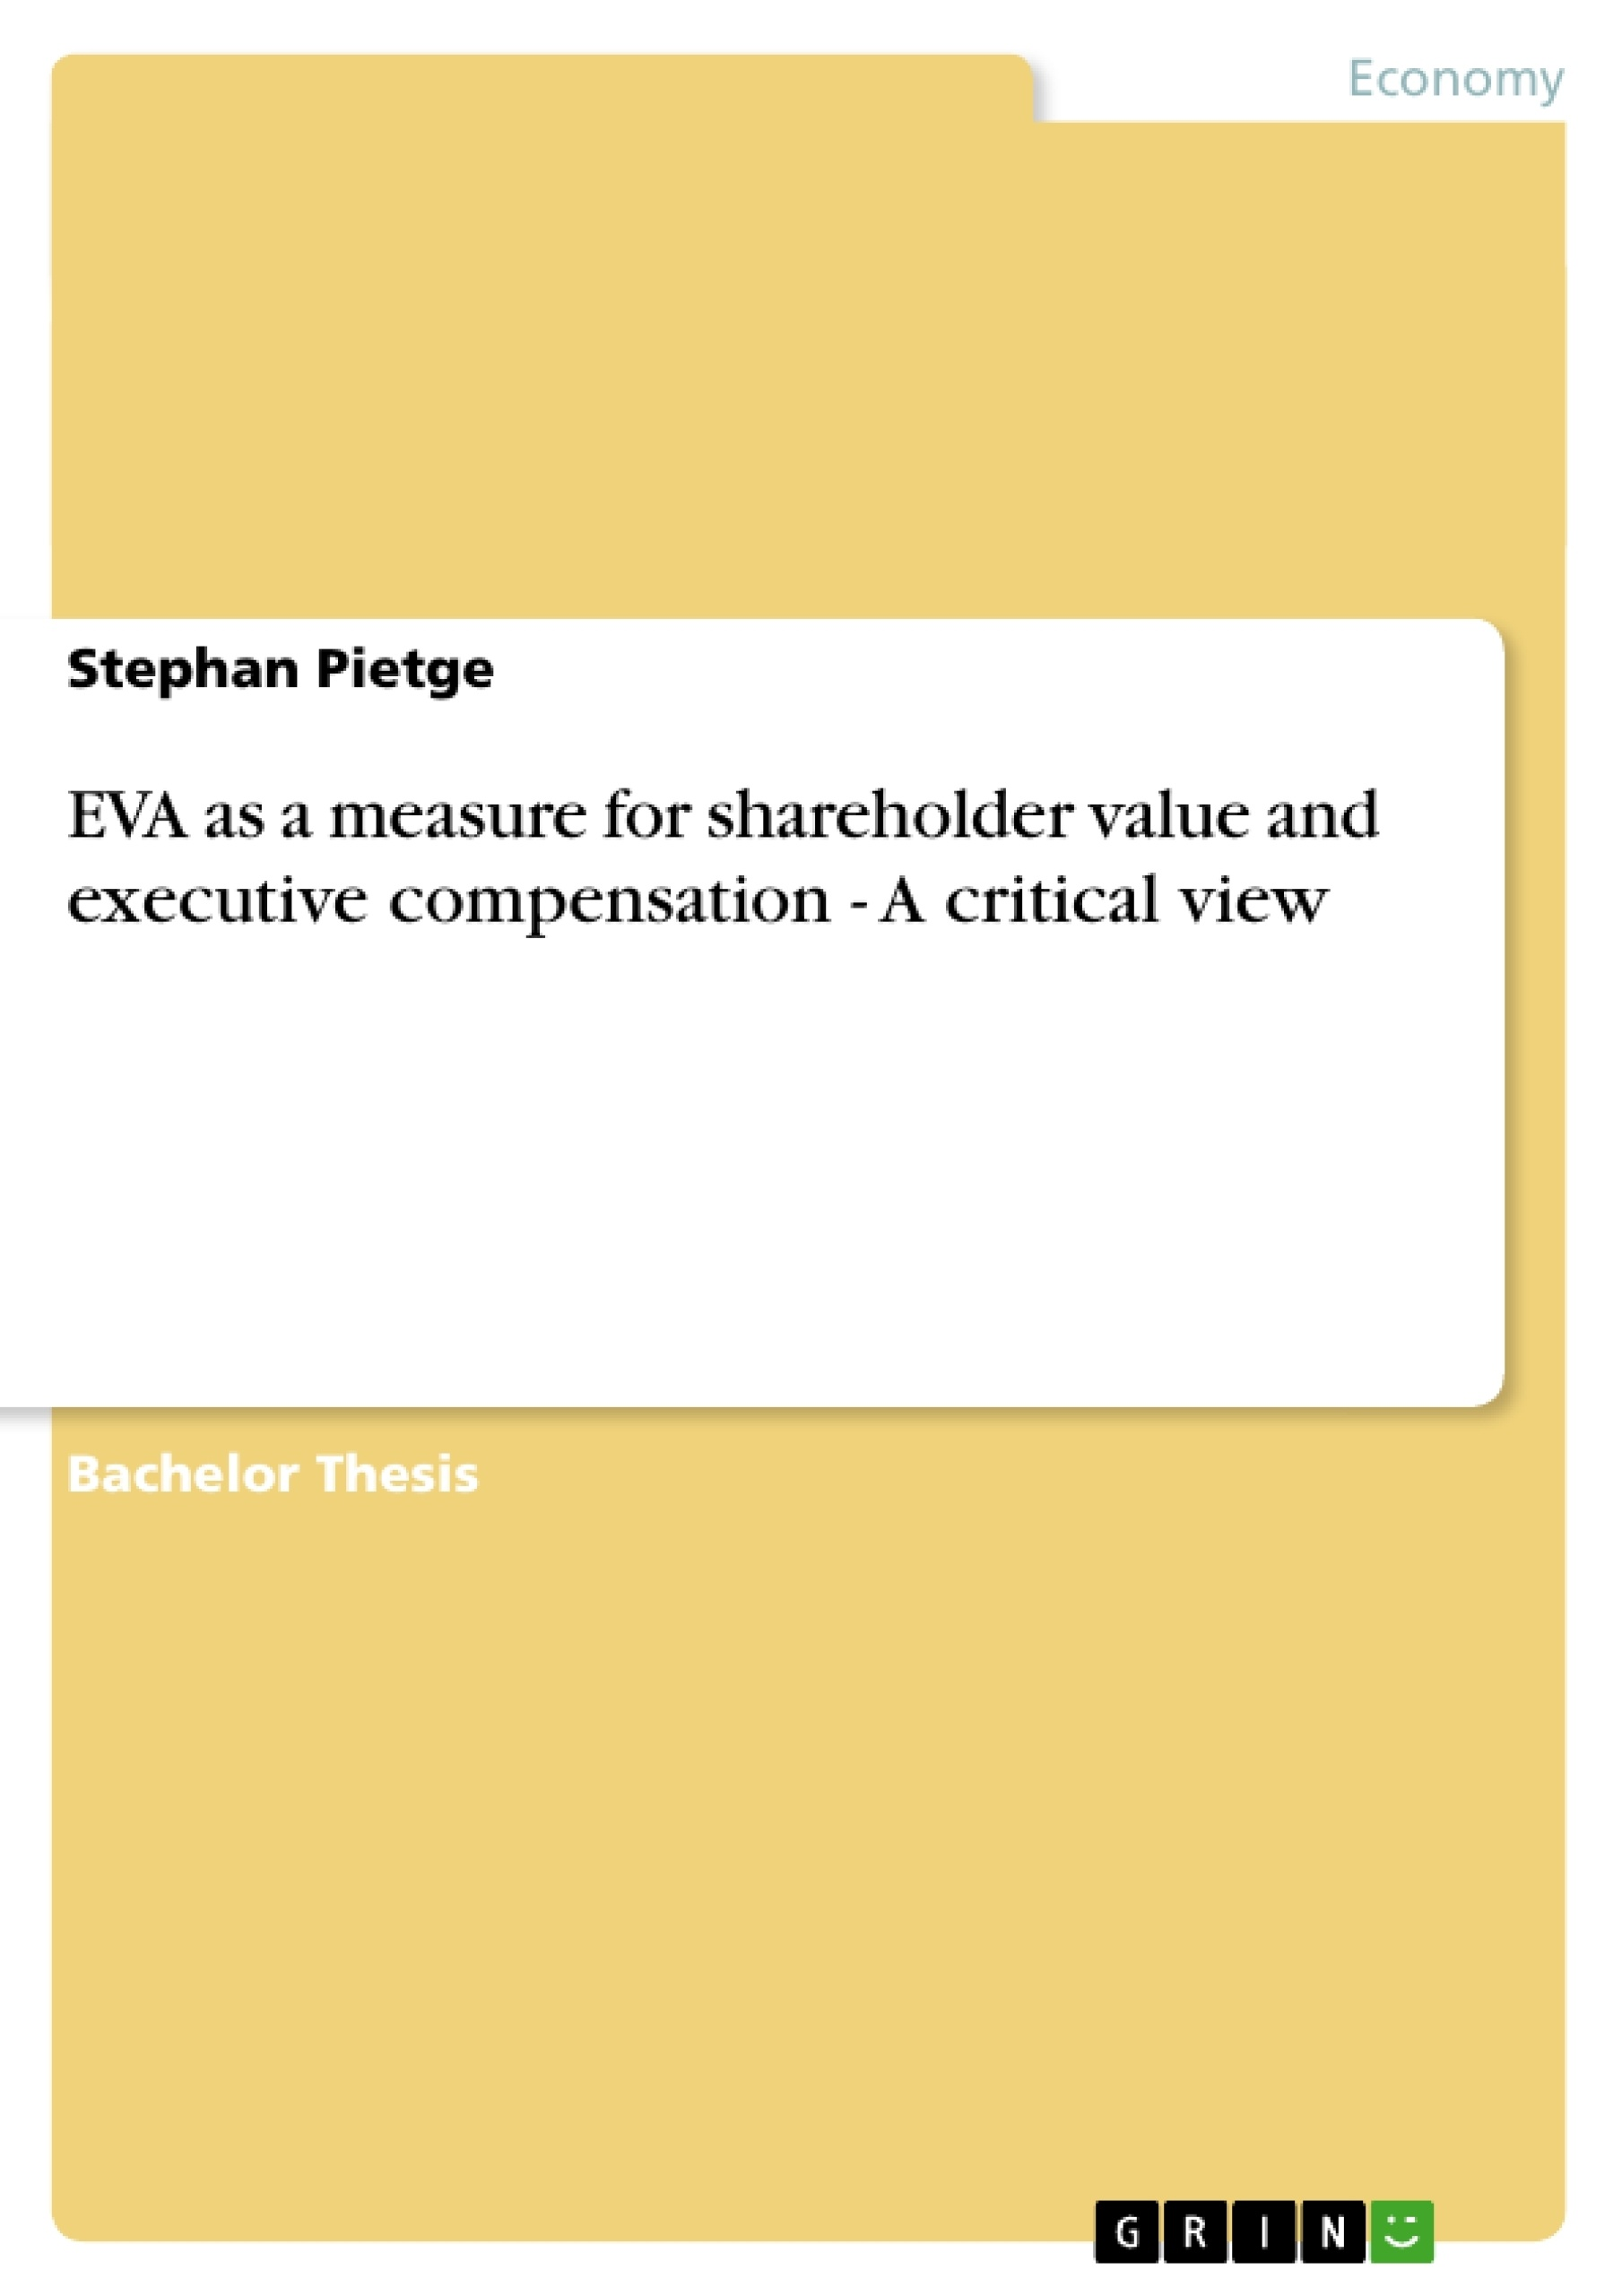 Title: EVA as a measure for shareholder value and executive compensation - A critical view